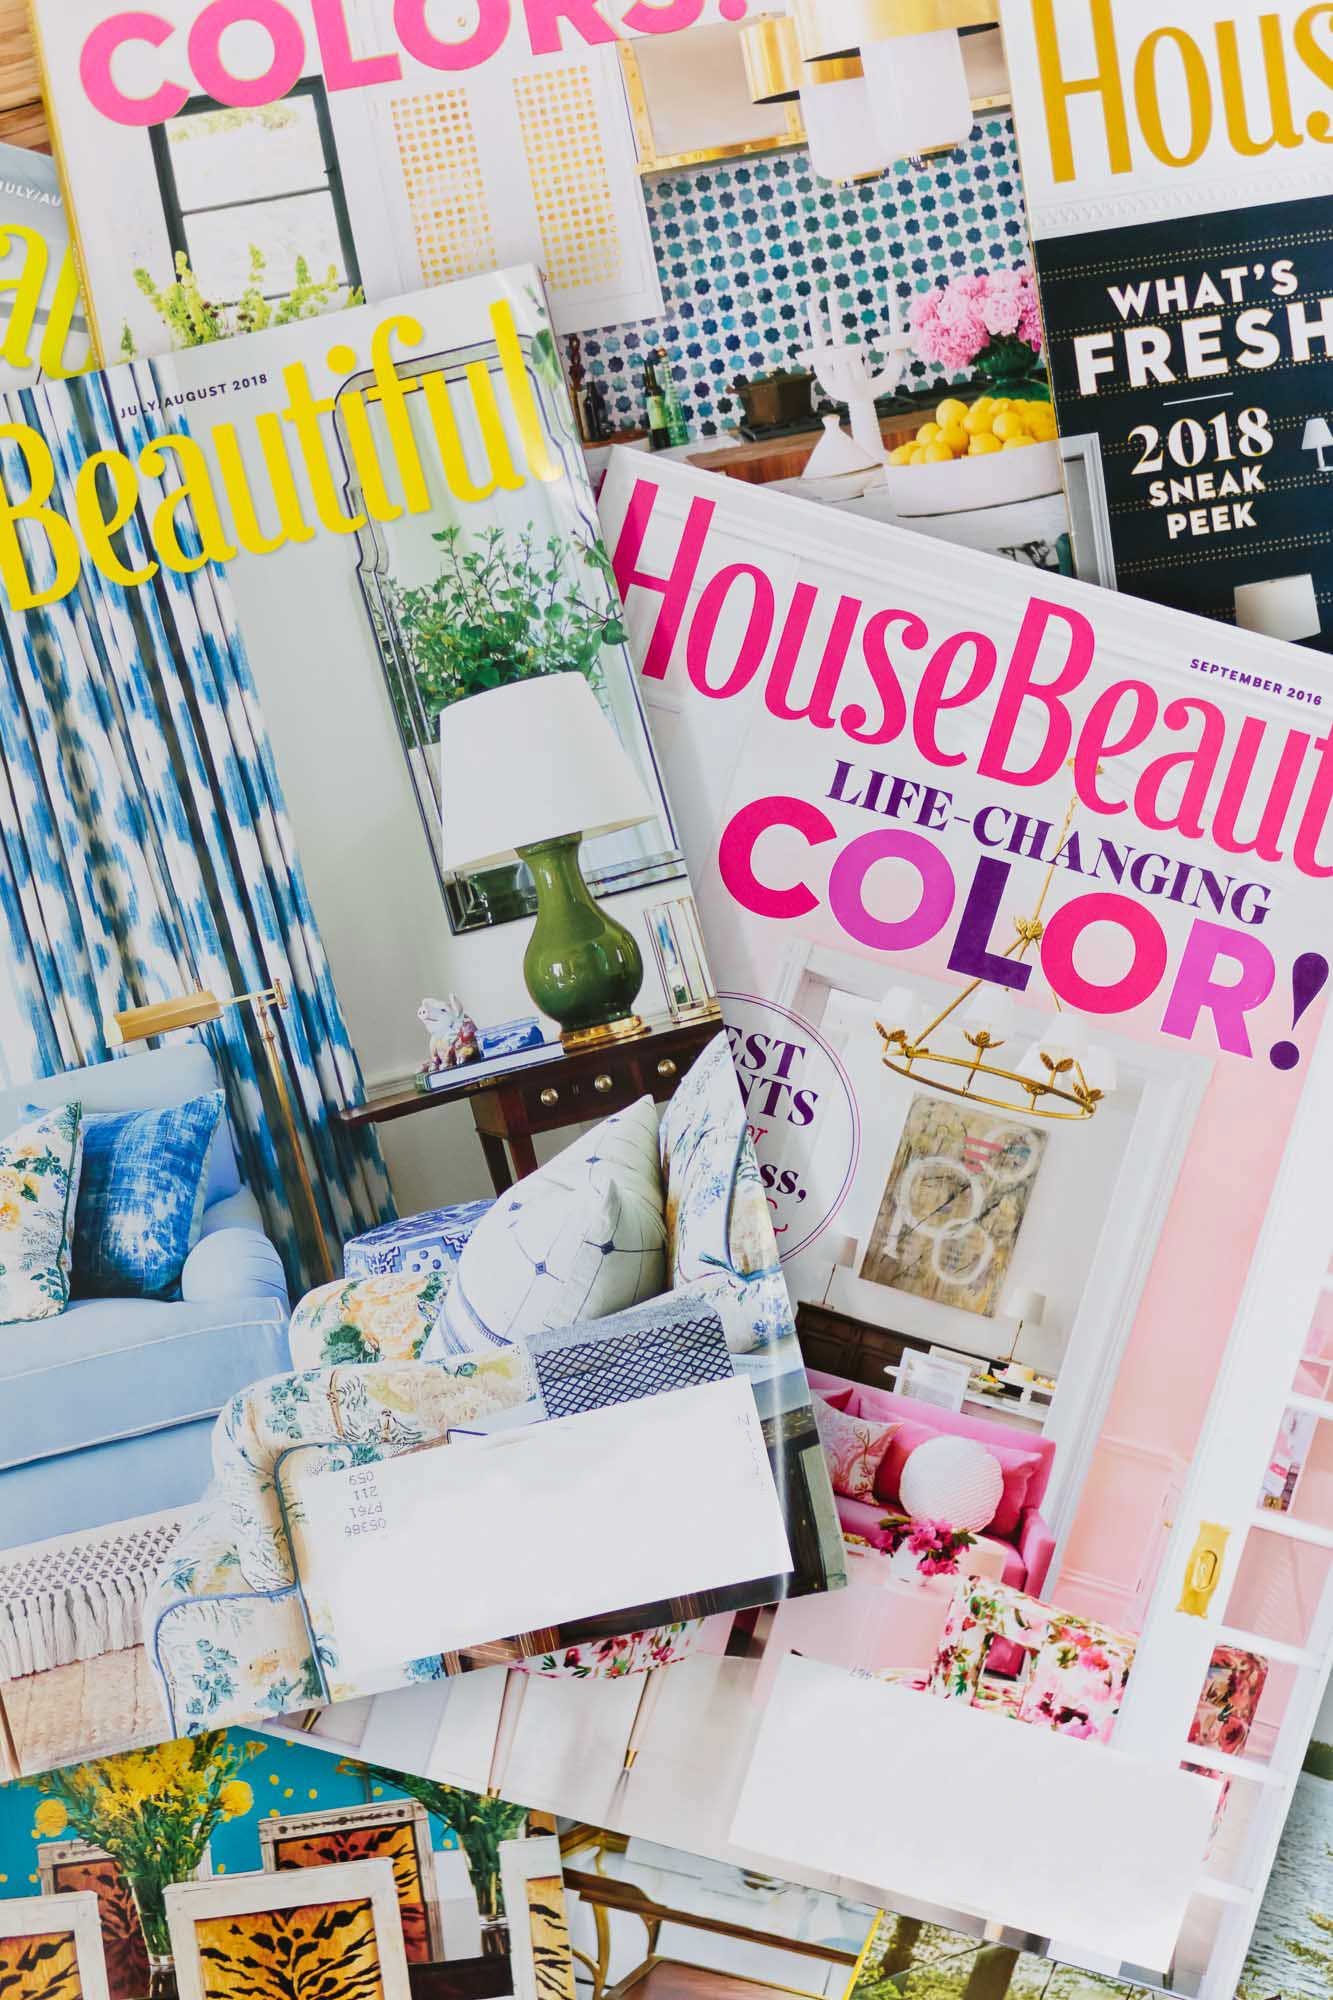 The Drama At House Beautiful What Do We Want From Design Magazines York Avenue